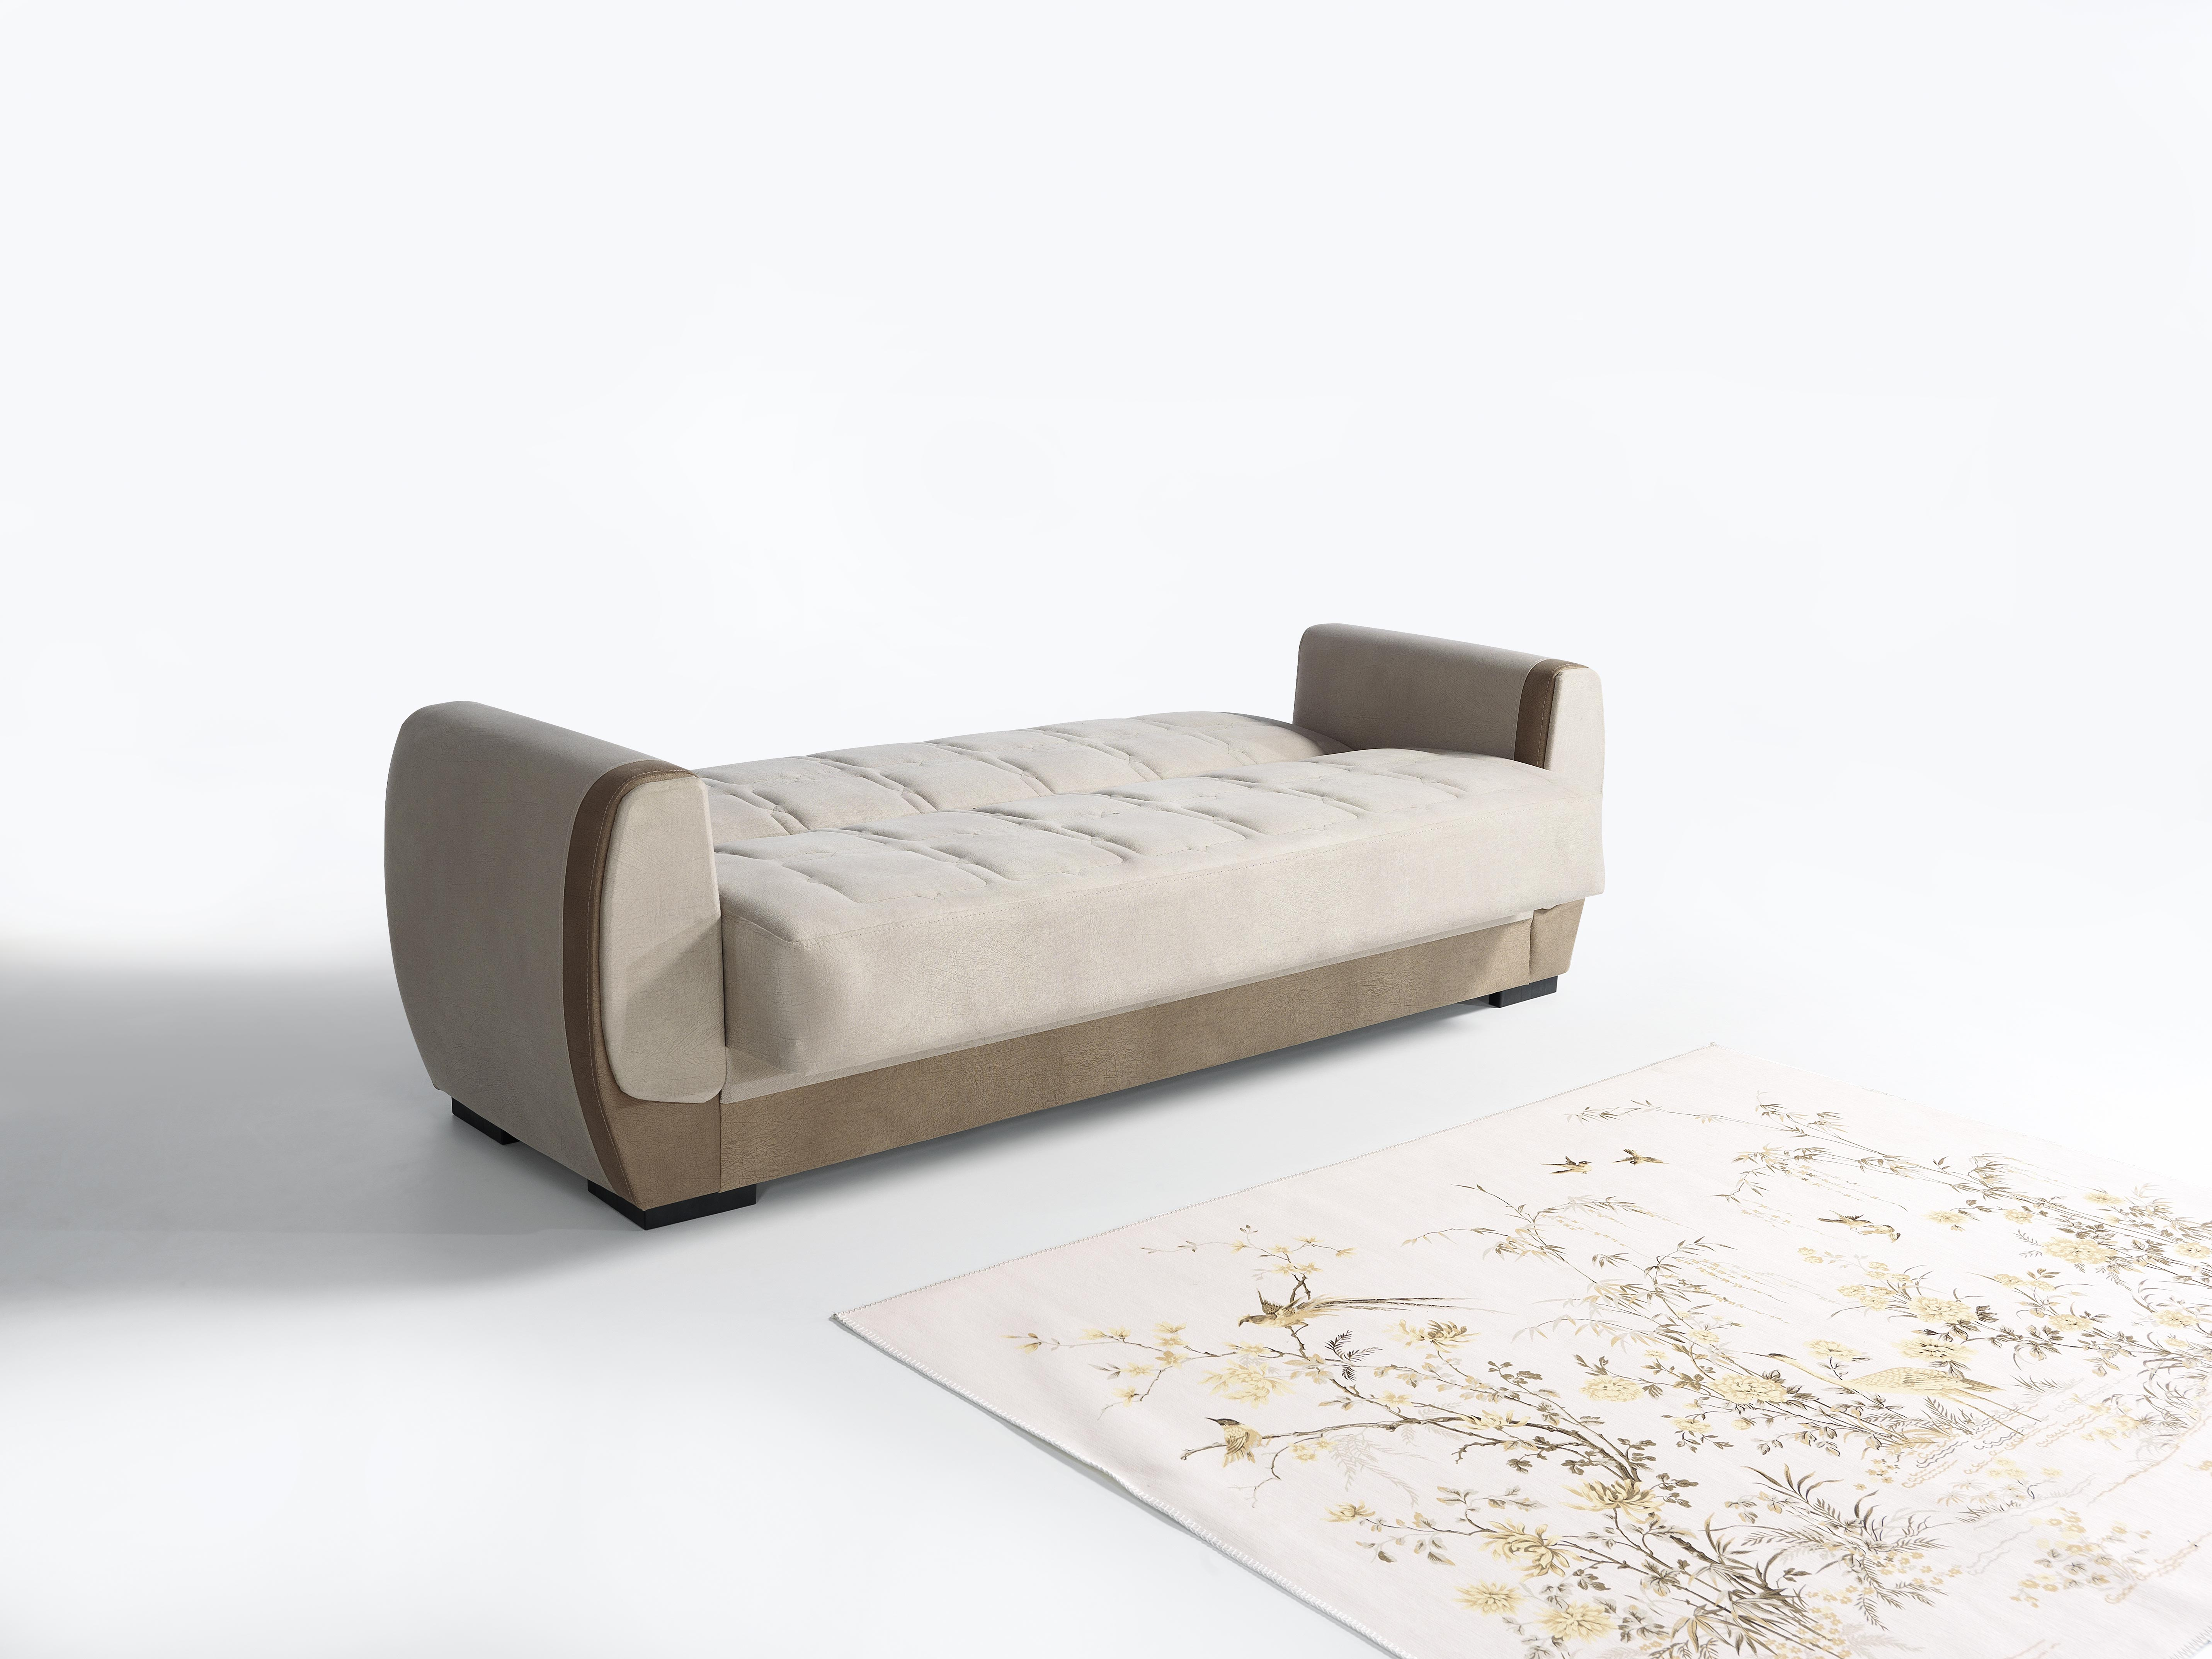 Strange Sofa Couch Set Bade 3 2 1 In Beige Mit Schlaffunktion Bralicious Painted Fabric Chair Ideas Braliciousco